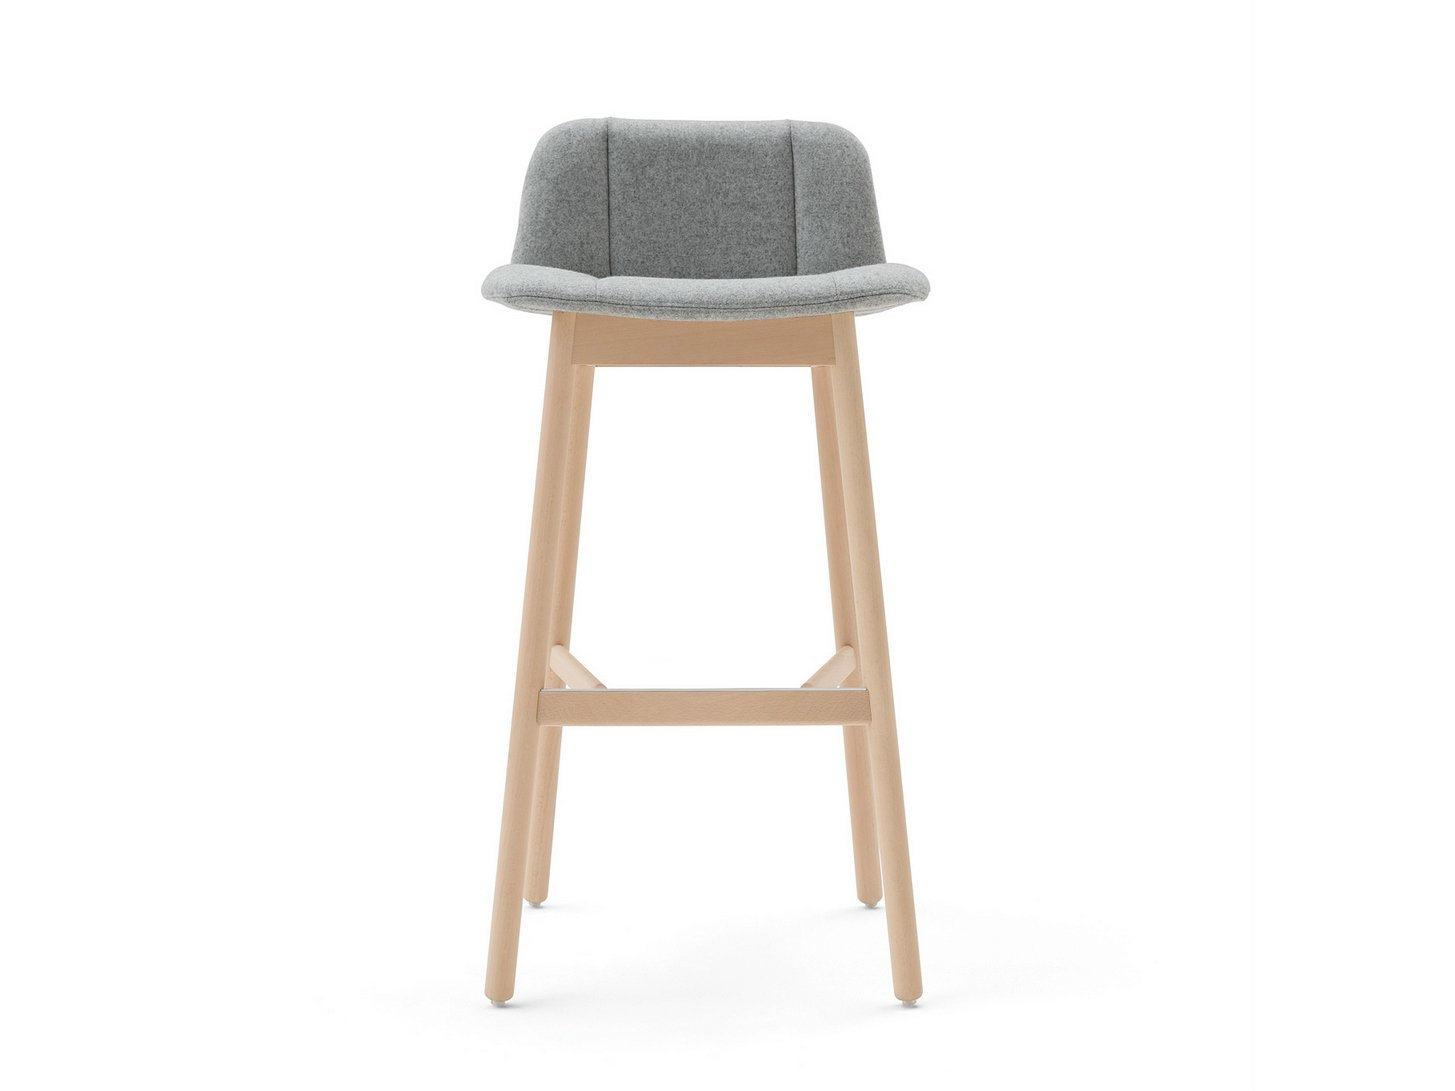 Hippy Counter Stool By Billiani Design Emilio Nanni